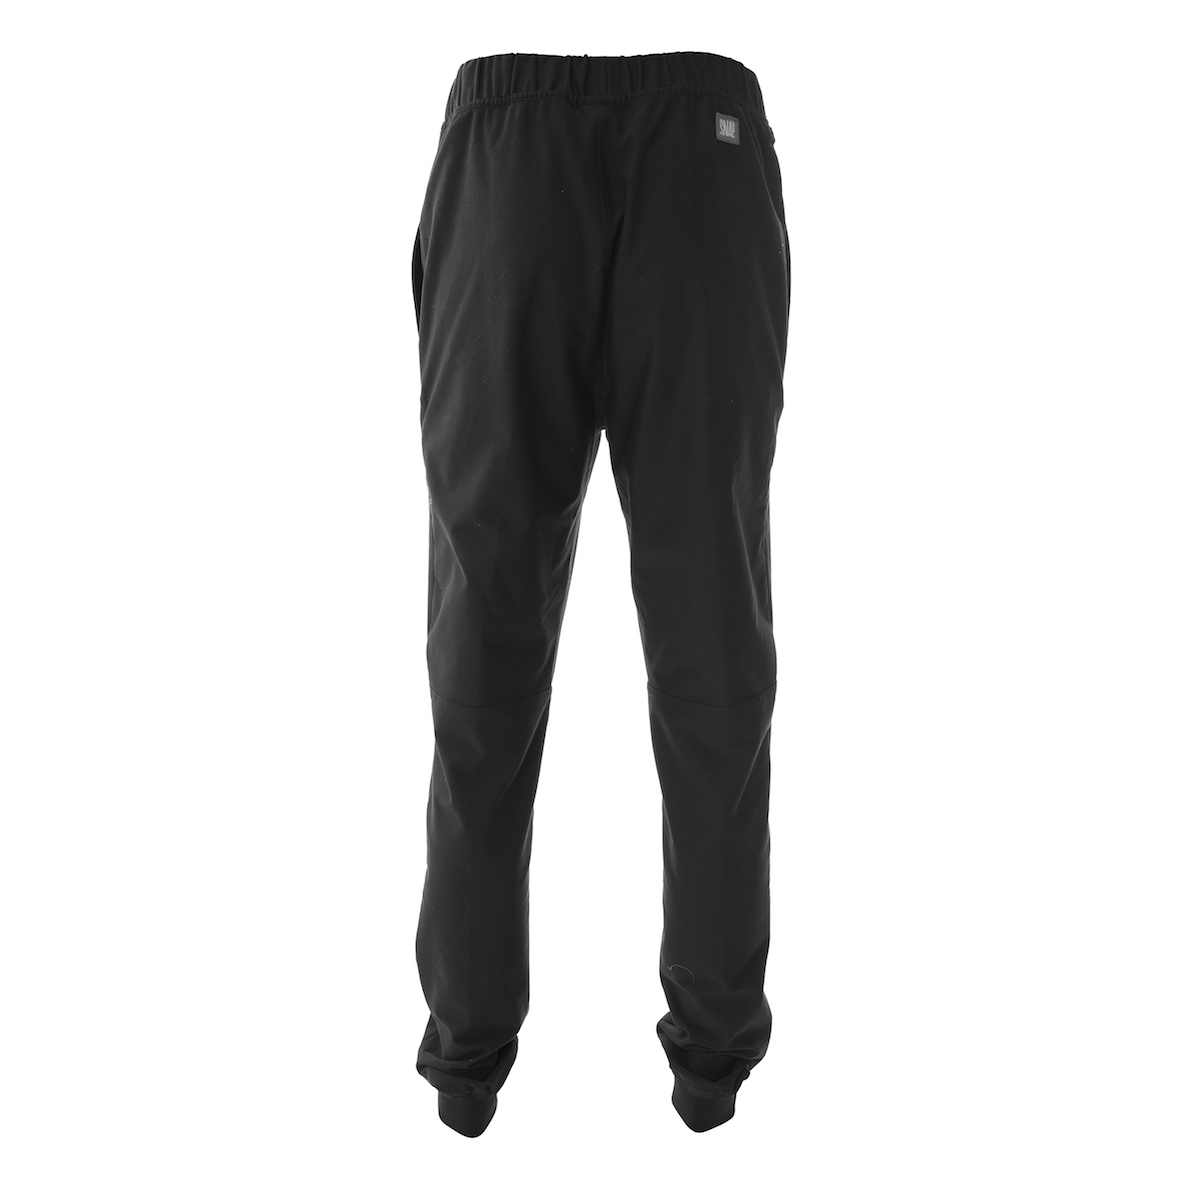 black jogging for climbers